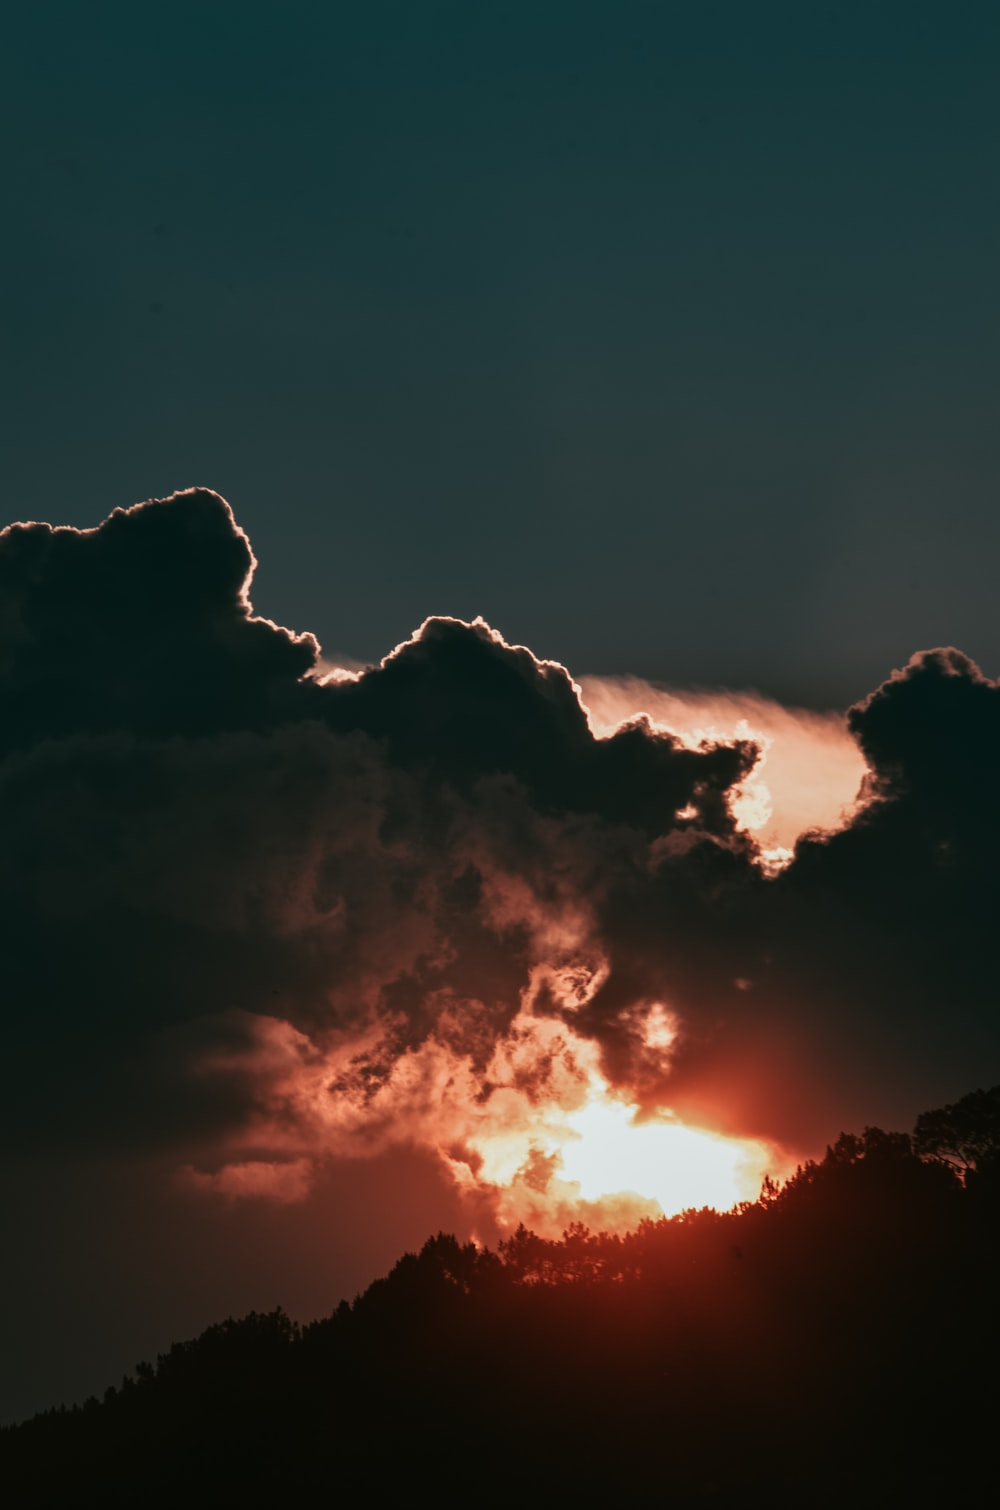 silhouette of mountain under cloudy sky during golden hour